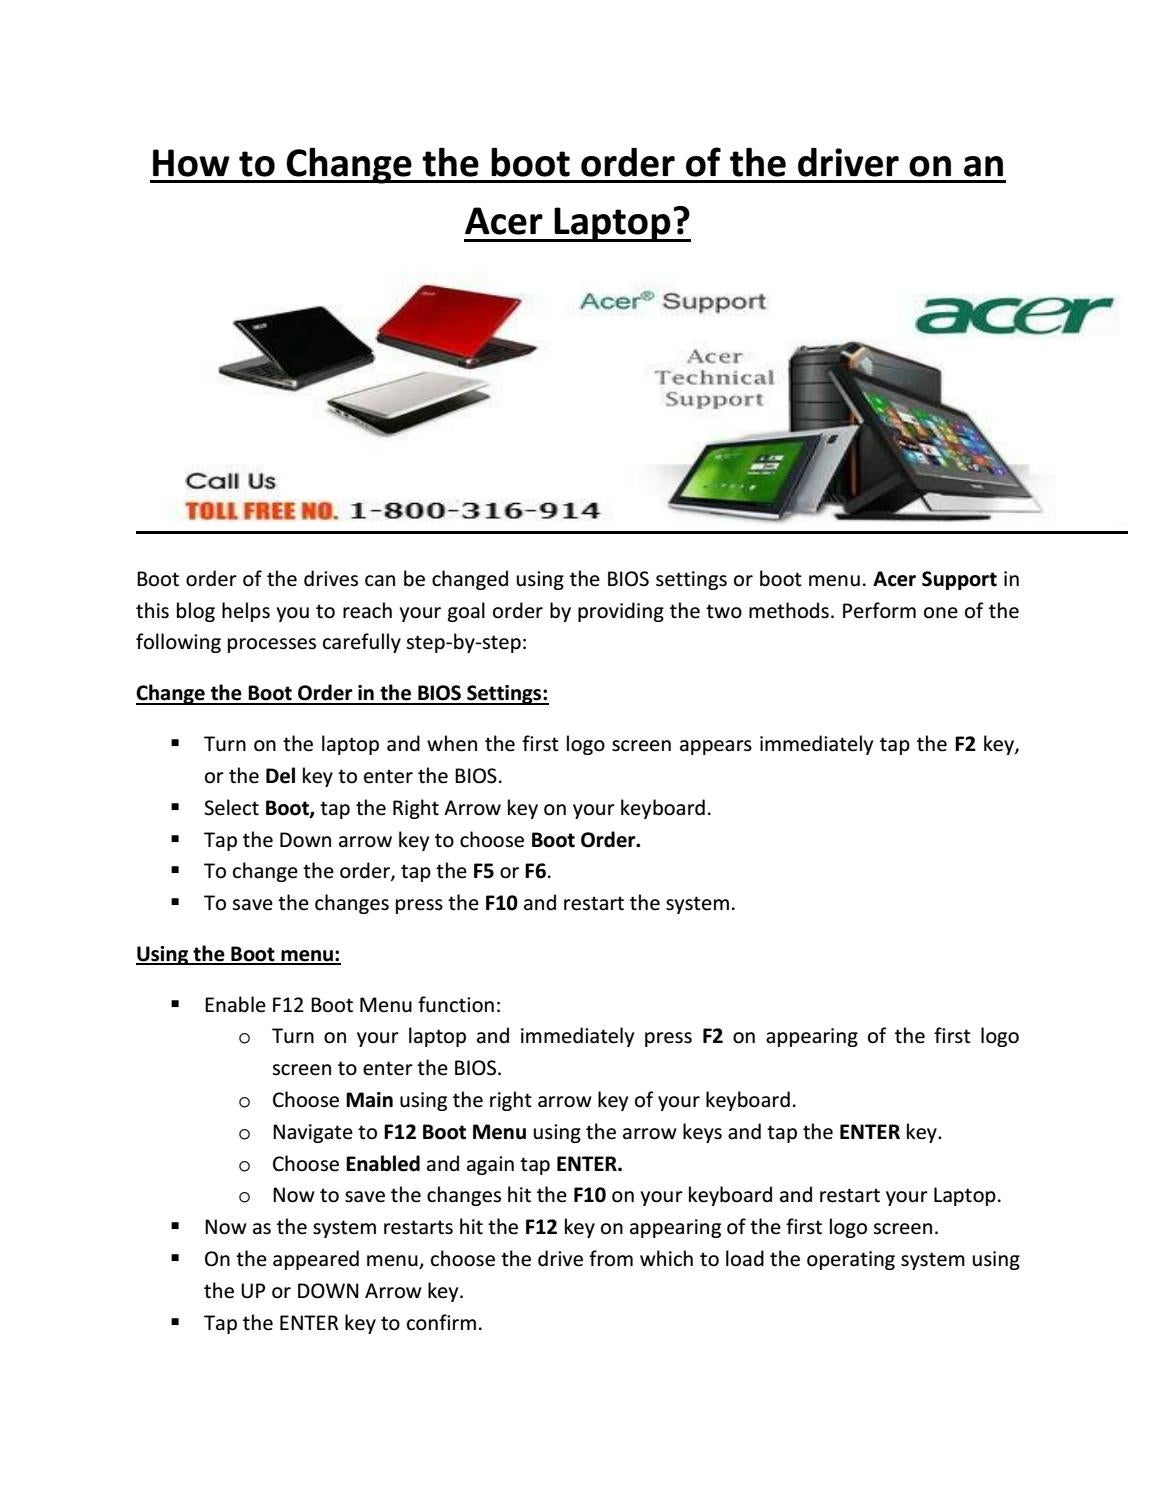 How to change the boot order of the driver on an acer laptop by